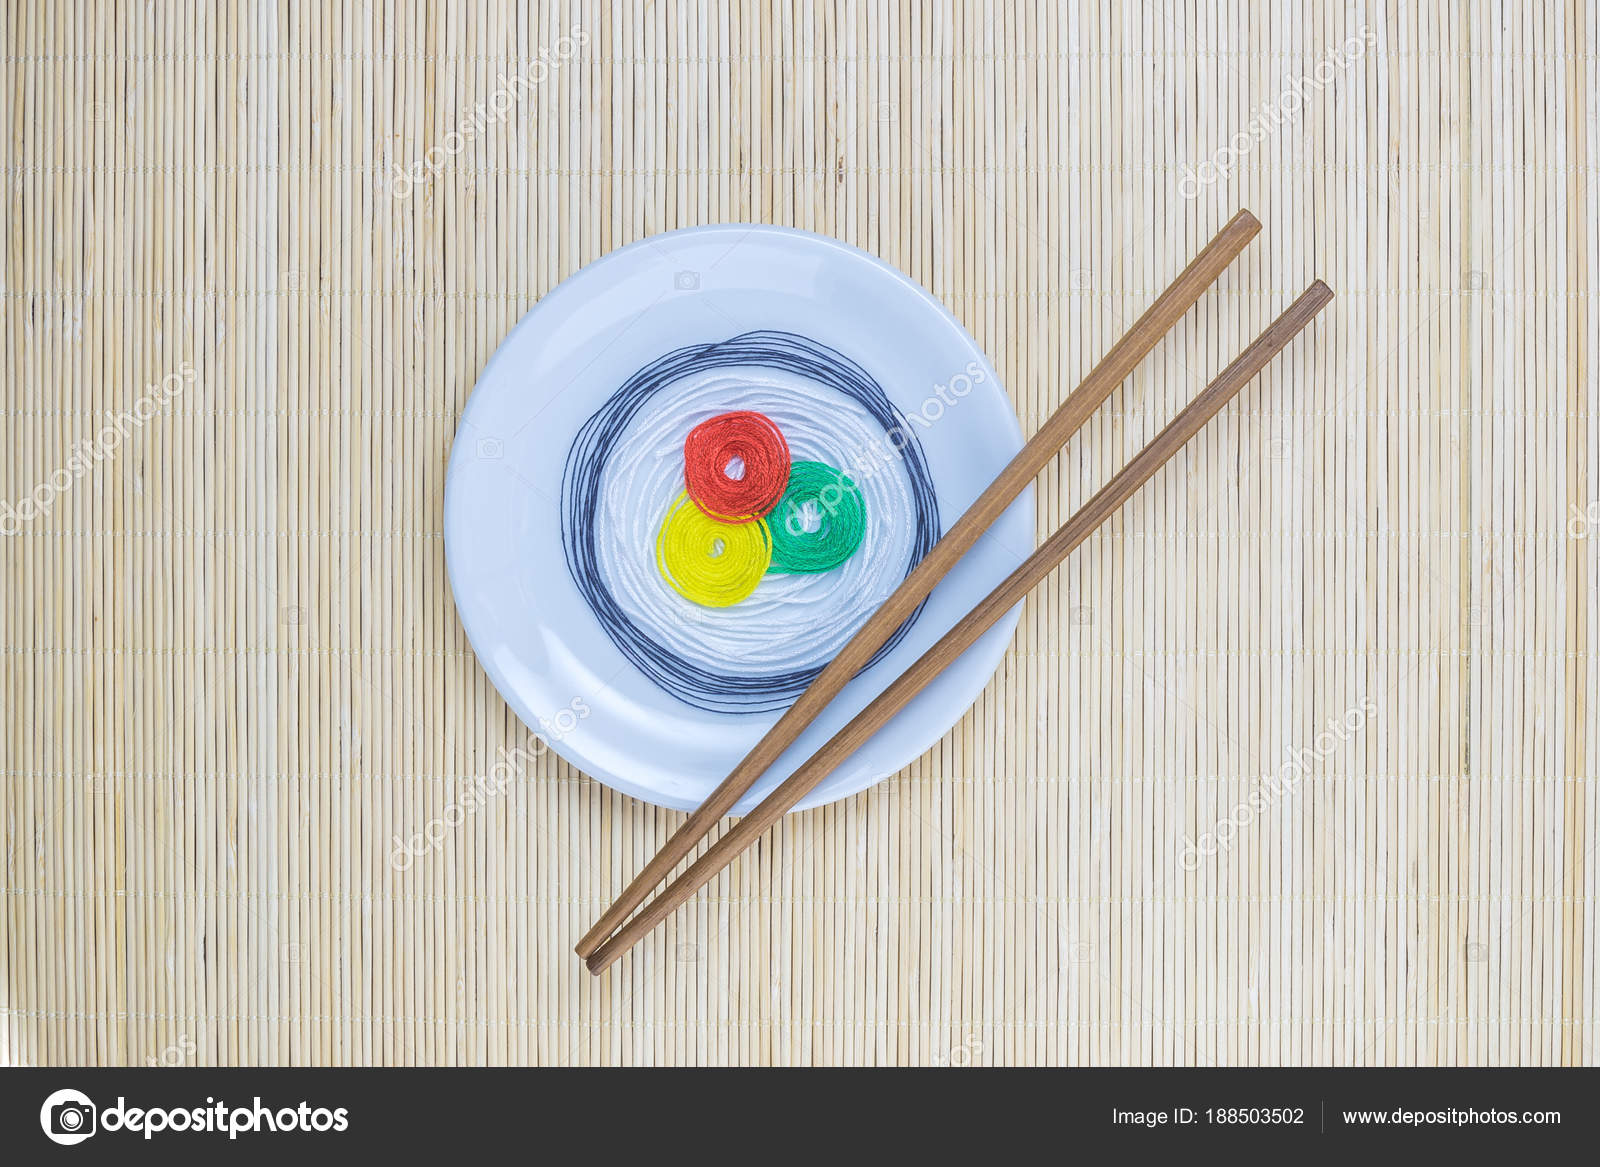 Colorful Strings In Form Of Sushi On White Plate And Sticks